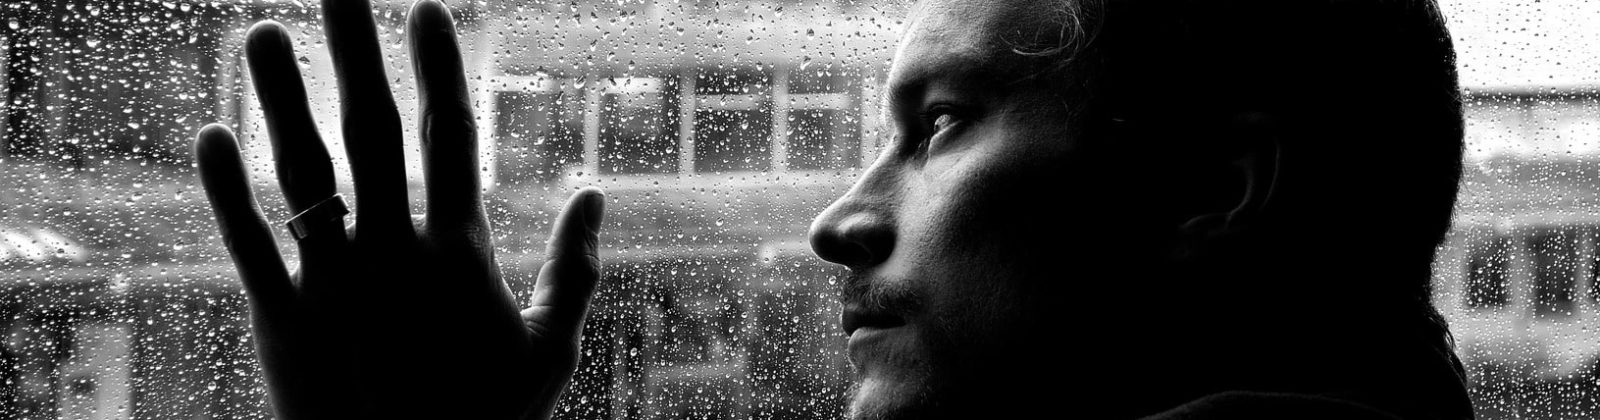 Safe but depressed, man looking out of a window